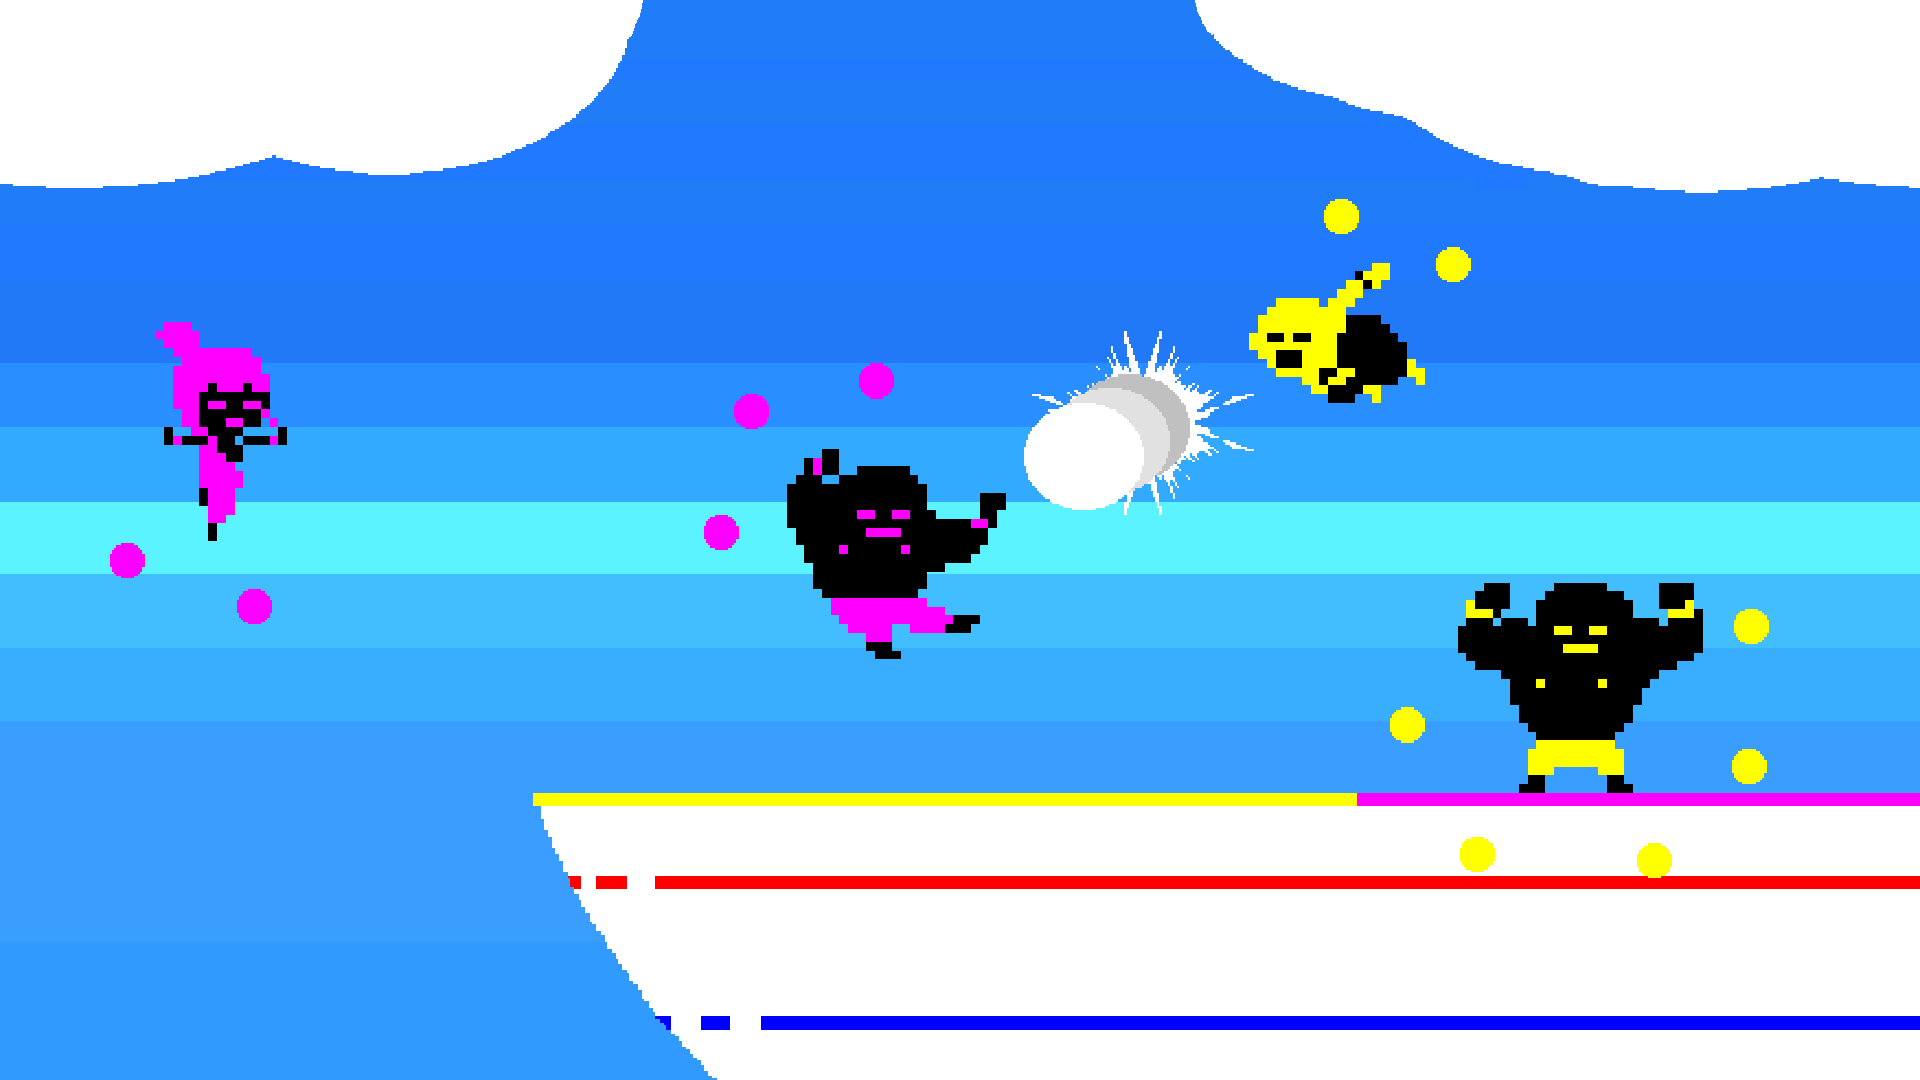 <em>Baribariball</em> asks players to score points by dumping a ball in an opponent's zone. Whether you smack your opponent with said ball en route to victory is entirely up to you.